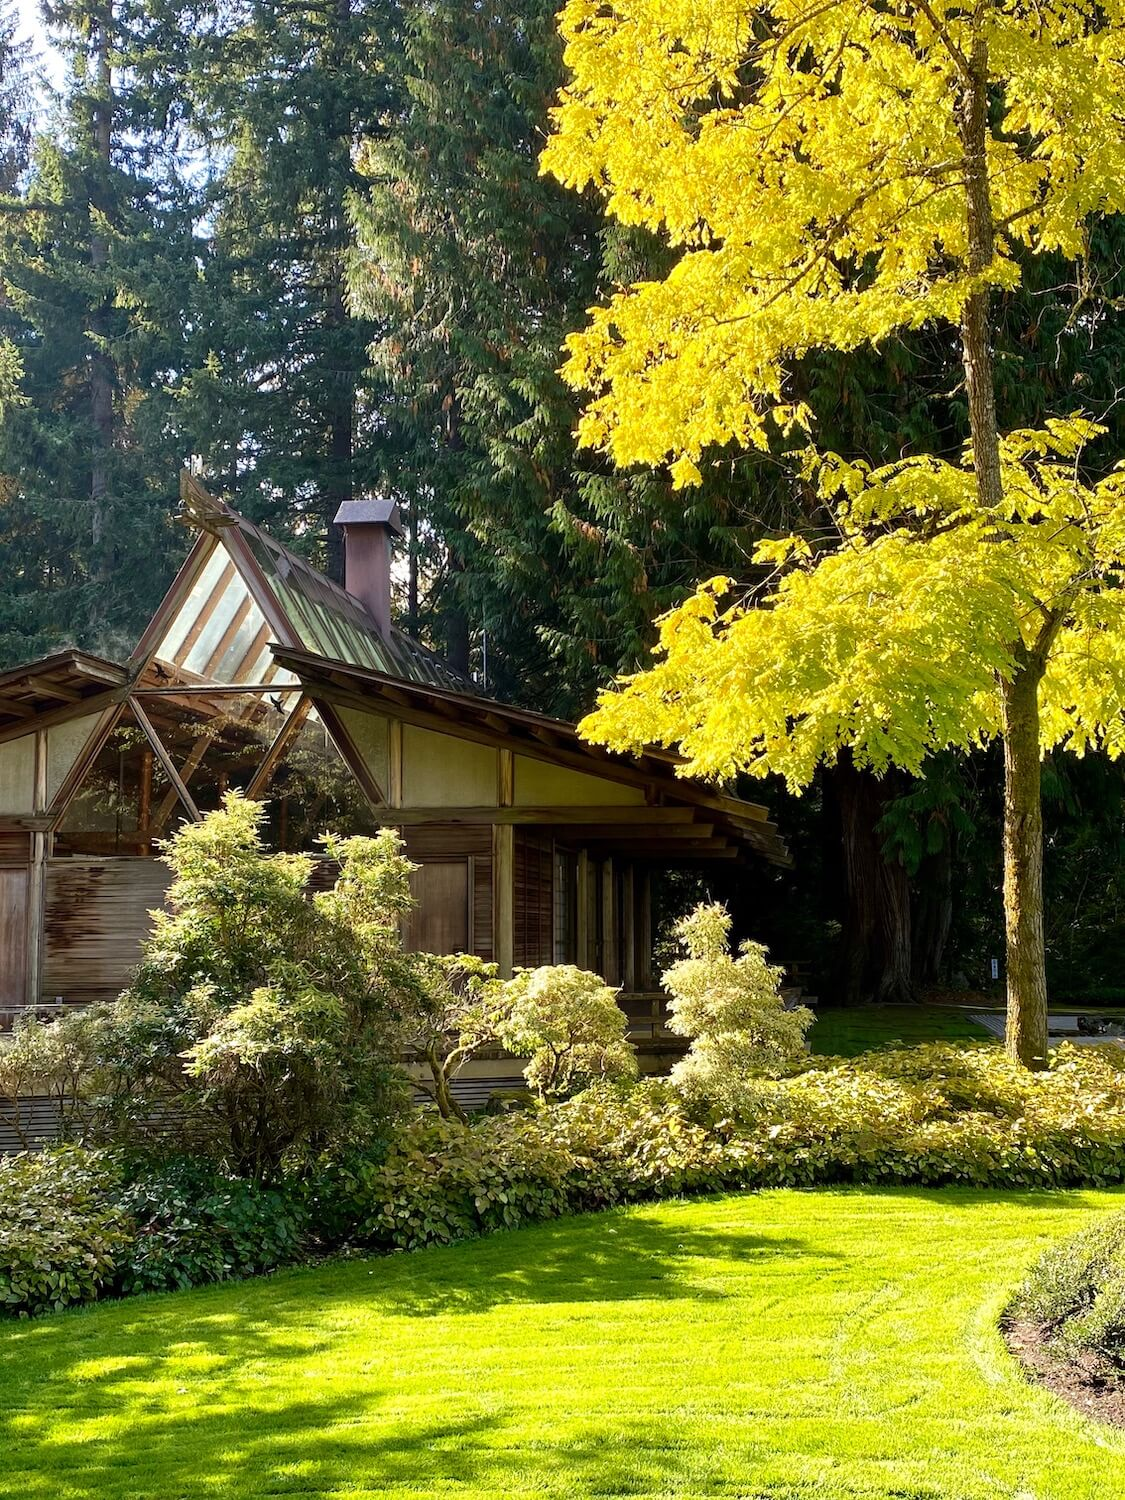 The Japanese Guest House at Bloedel Reserve is iconic with the geometric structure of wood beams filled with glass and sits amongst a formal mature garden with flowing green lawns and well trimmed shrubbery.